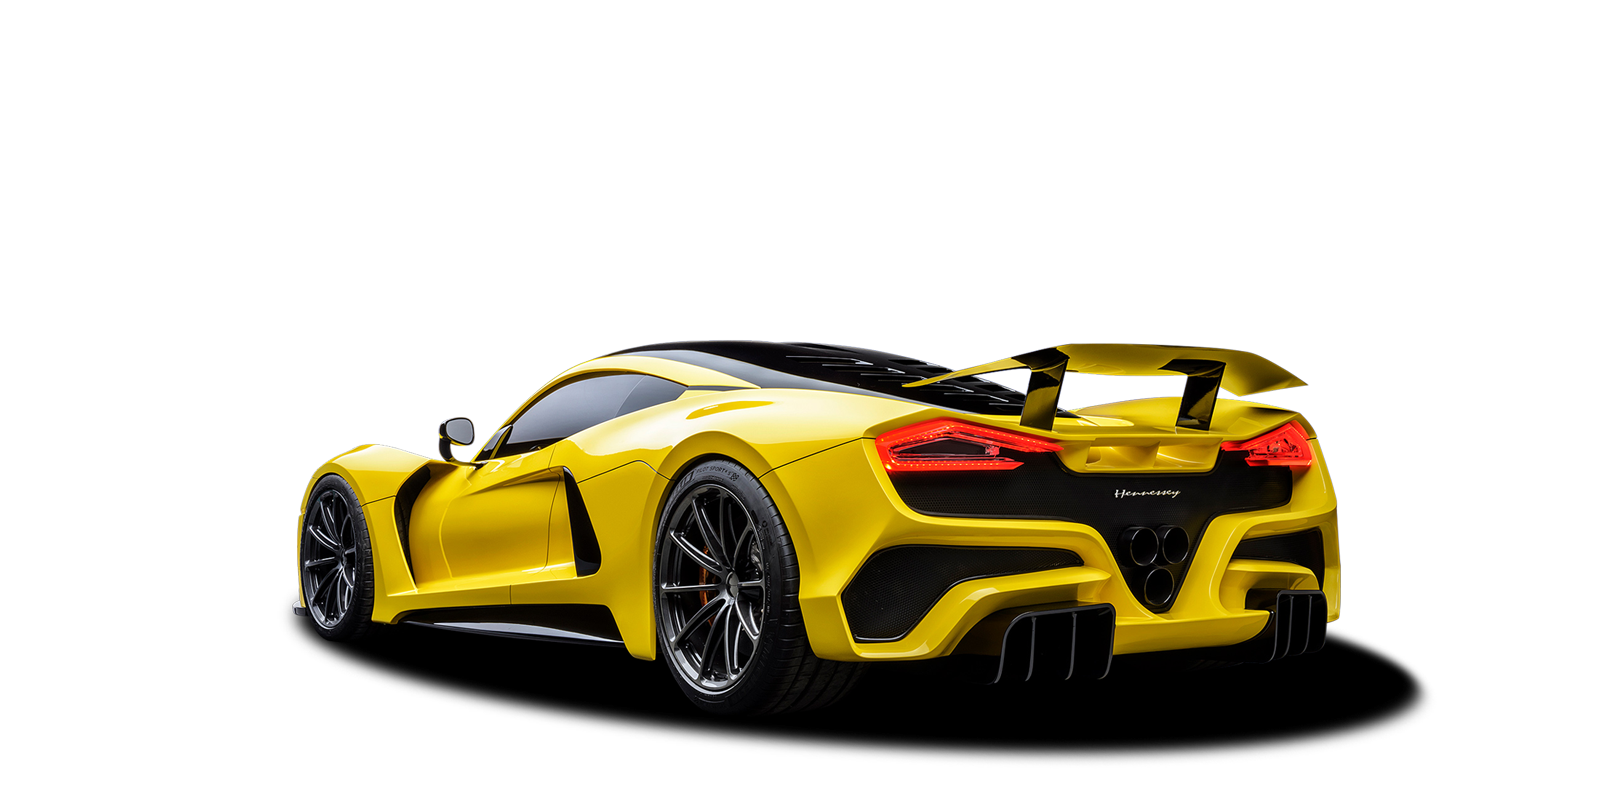 New Hennessey Venom F5 Photo - Rear view